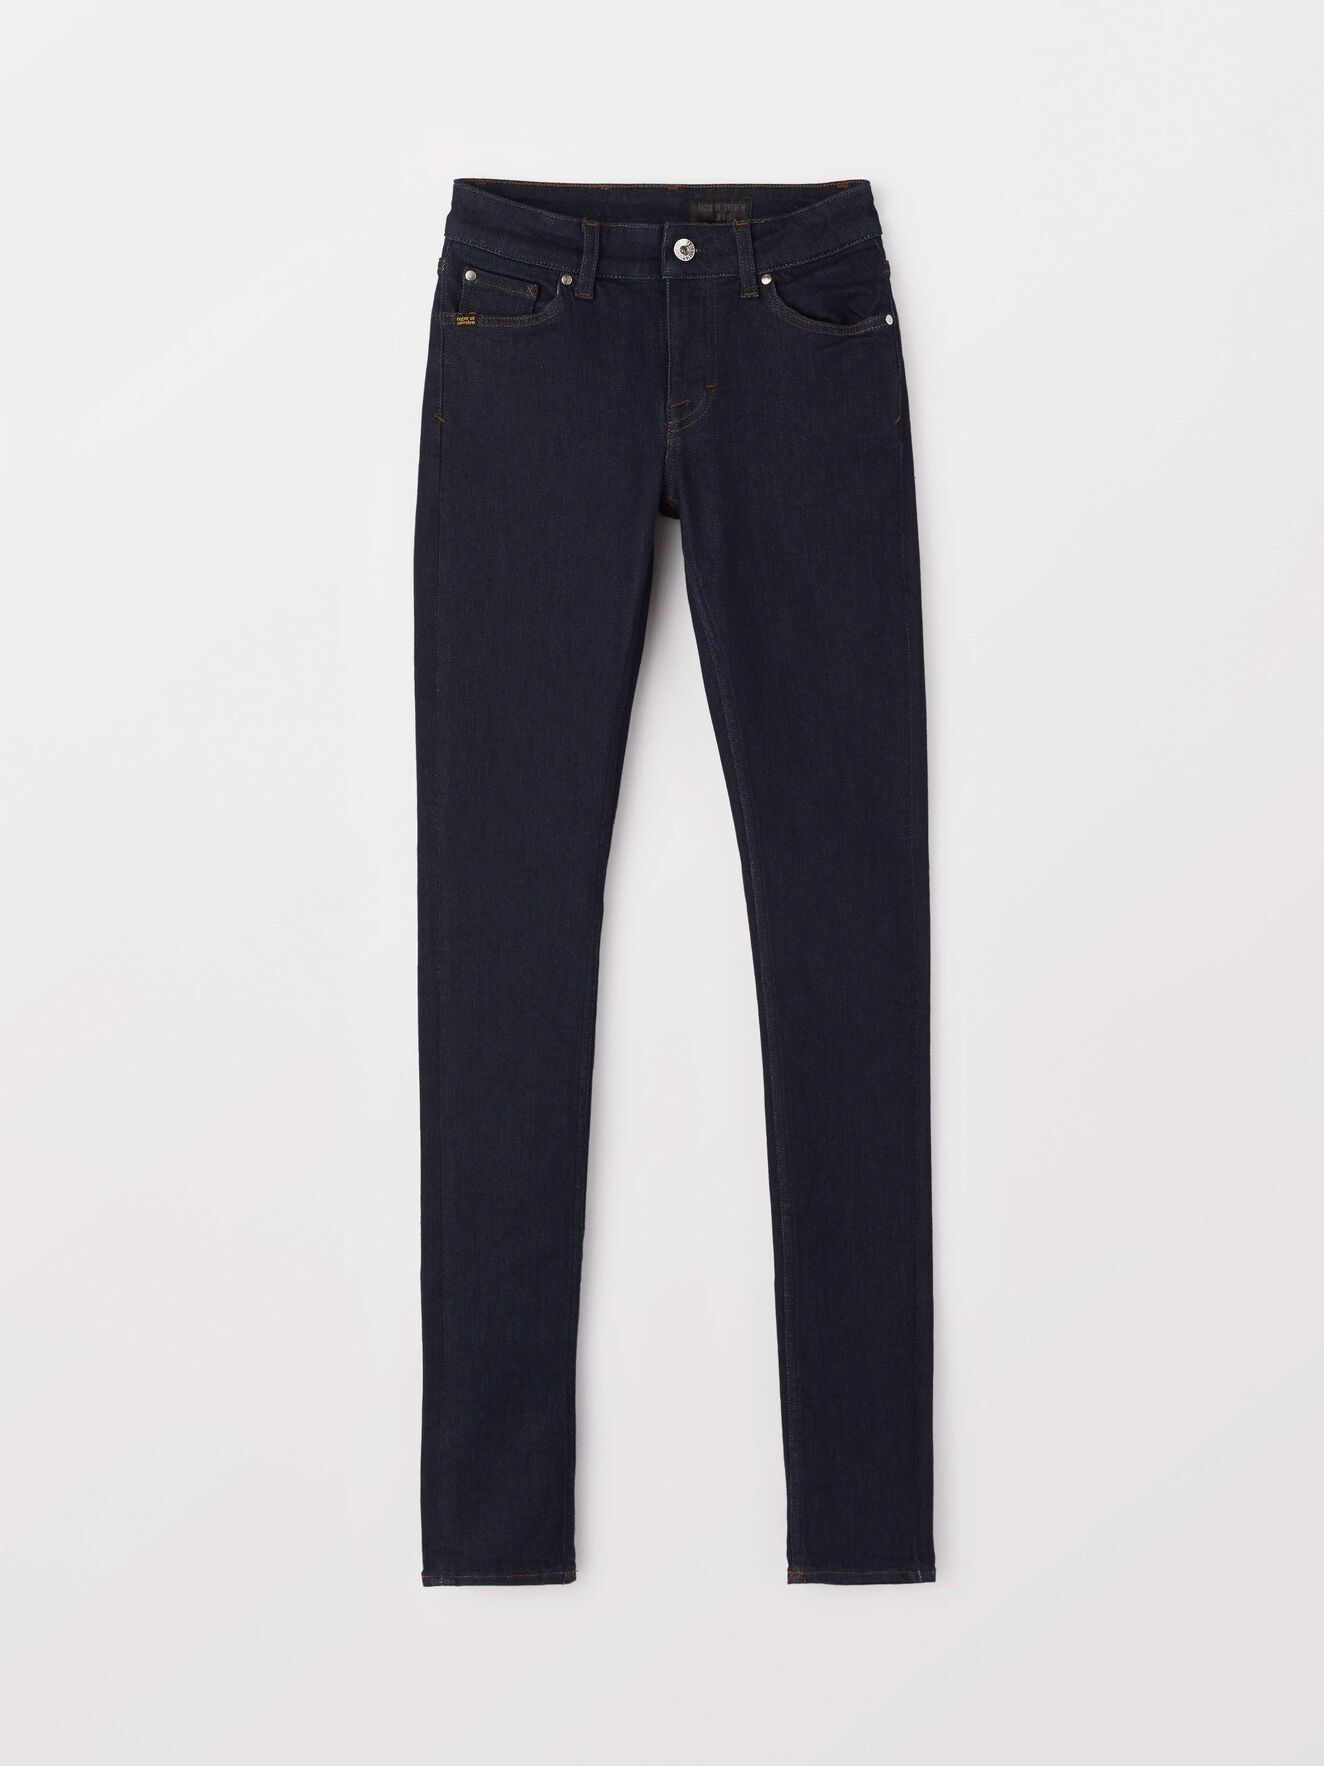 Slight Jeans in Midnight blue from Tiger of Sweden